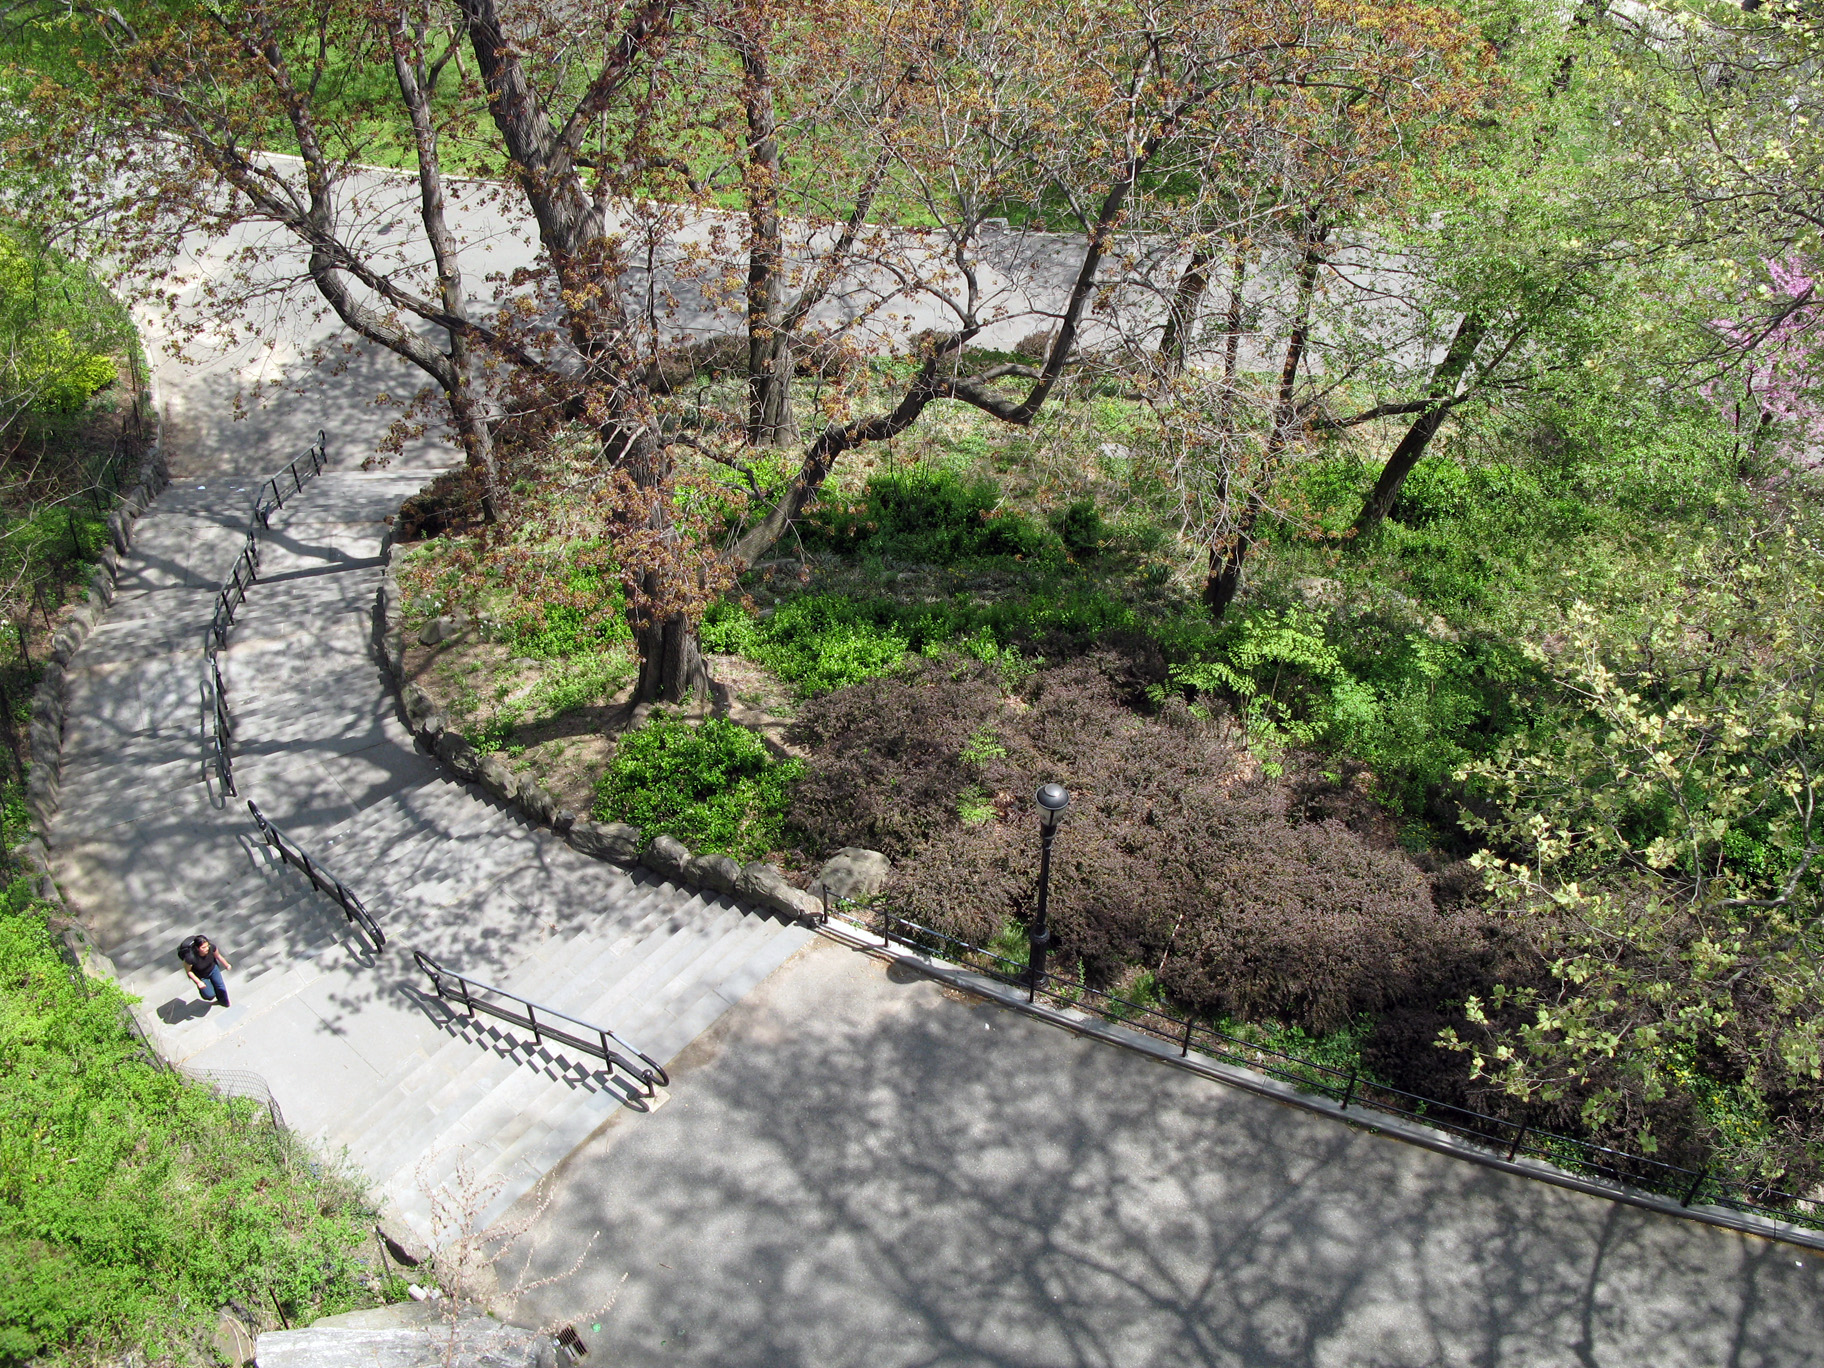 concrete and clay reworking nature in new york city